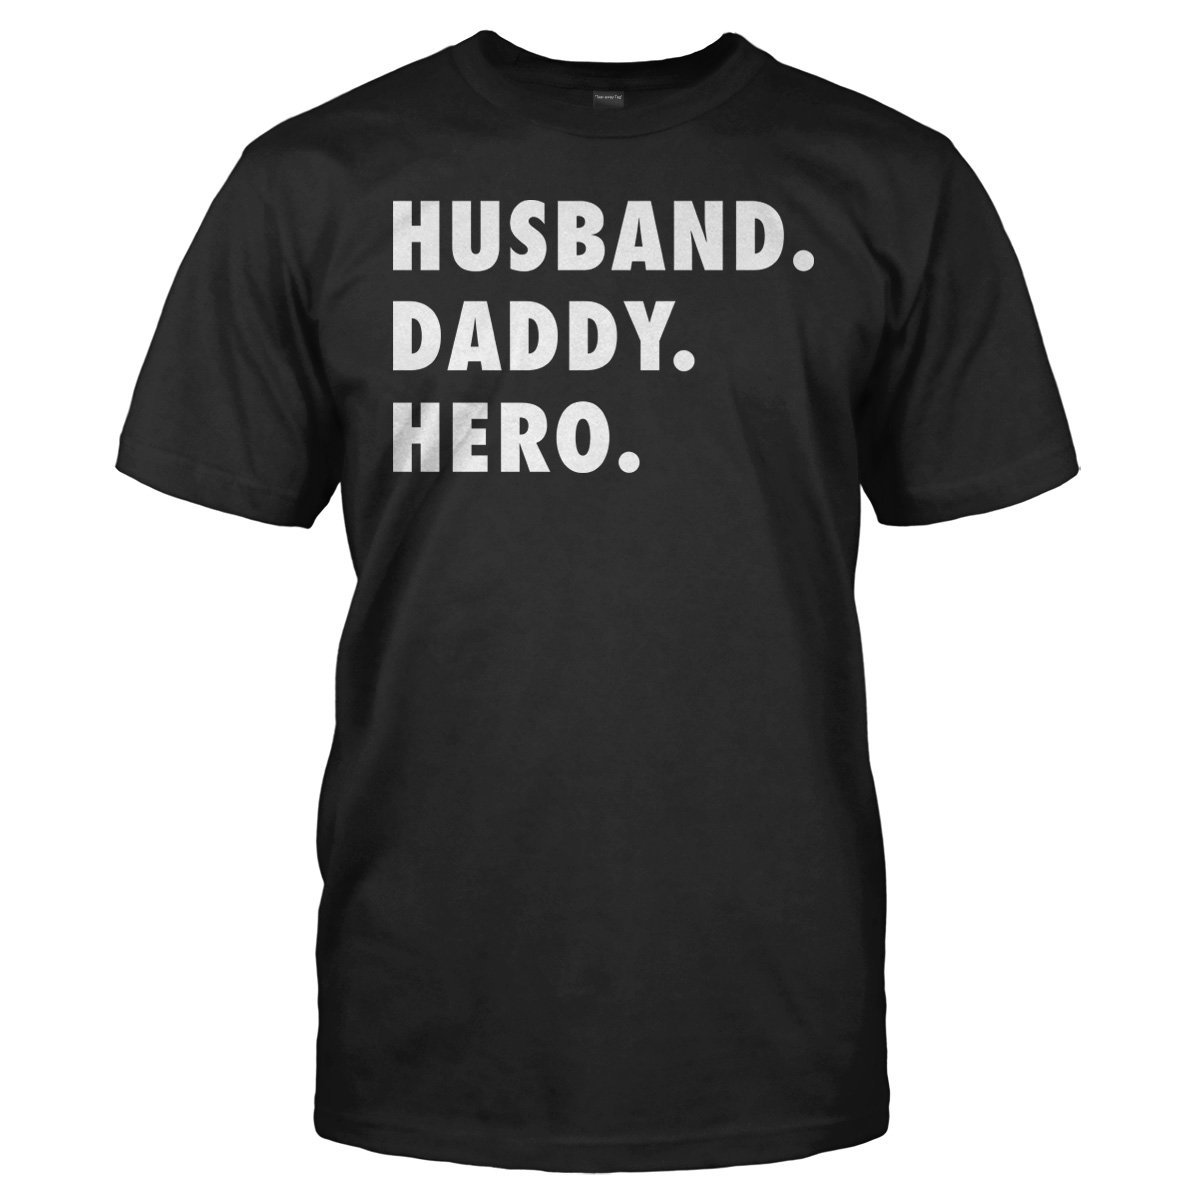 Husband. Daddy. Hero. - T Shirt